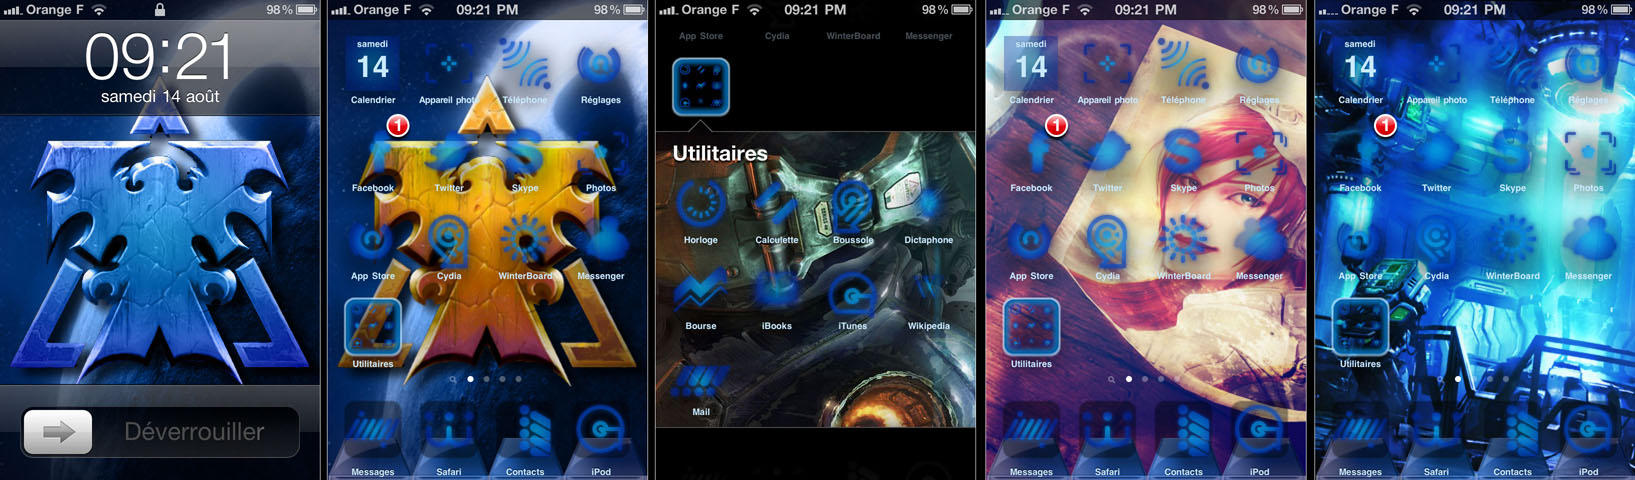 Starcraft Zerg theme iPhone by tsxworld on DeviantArt